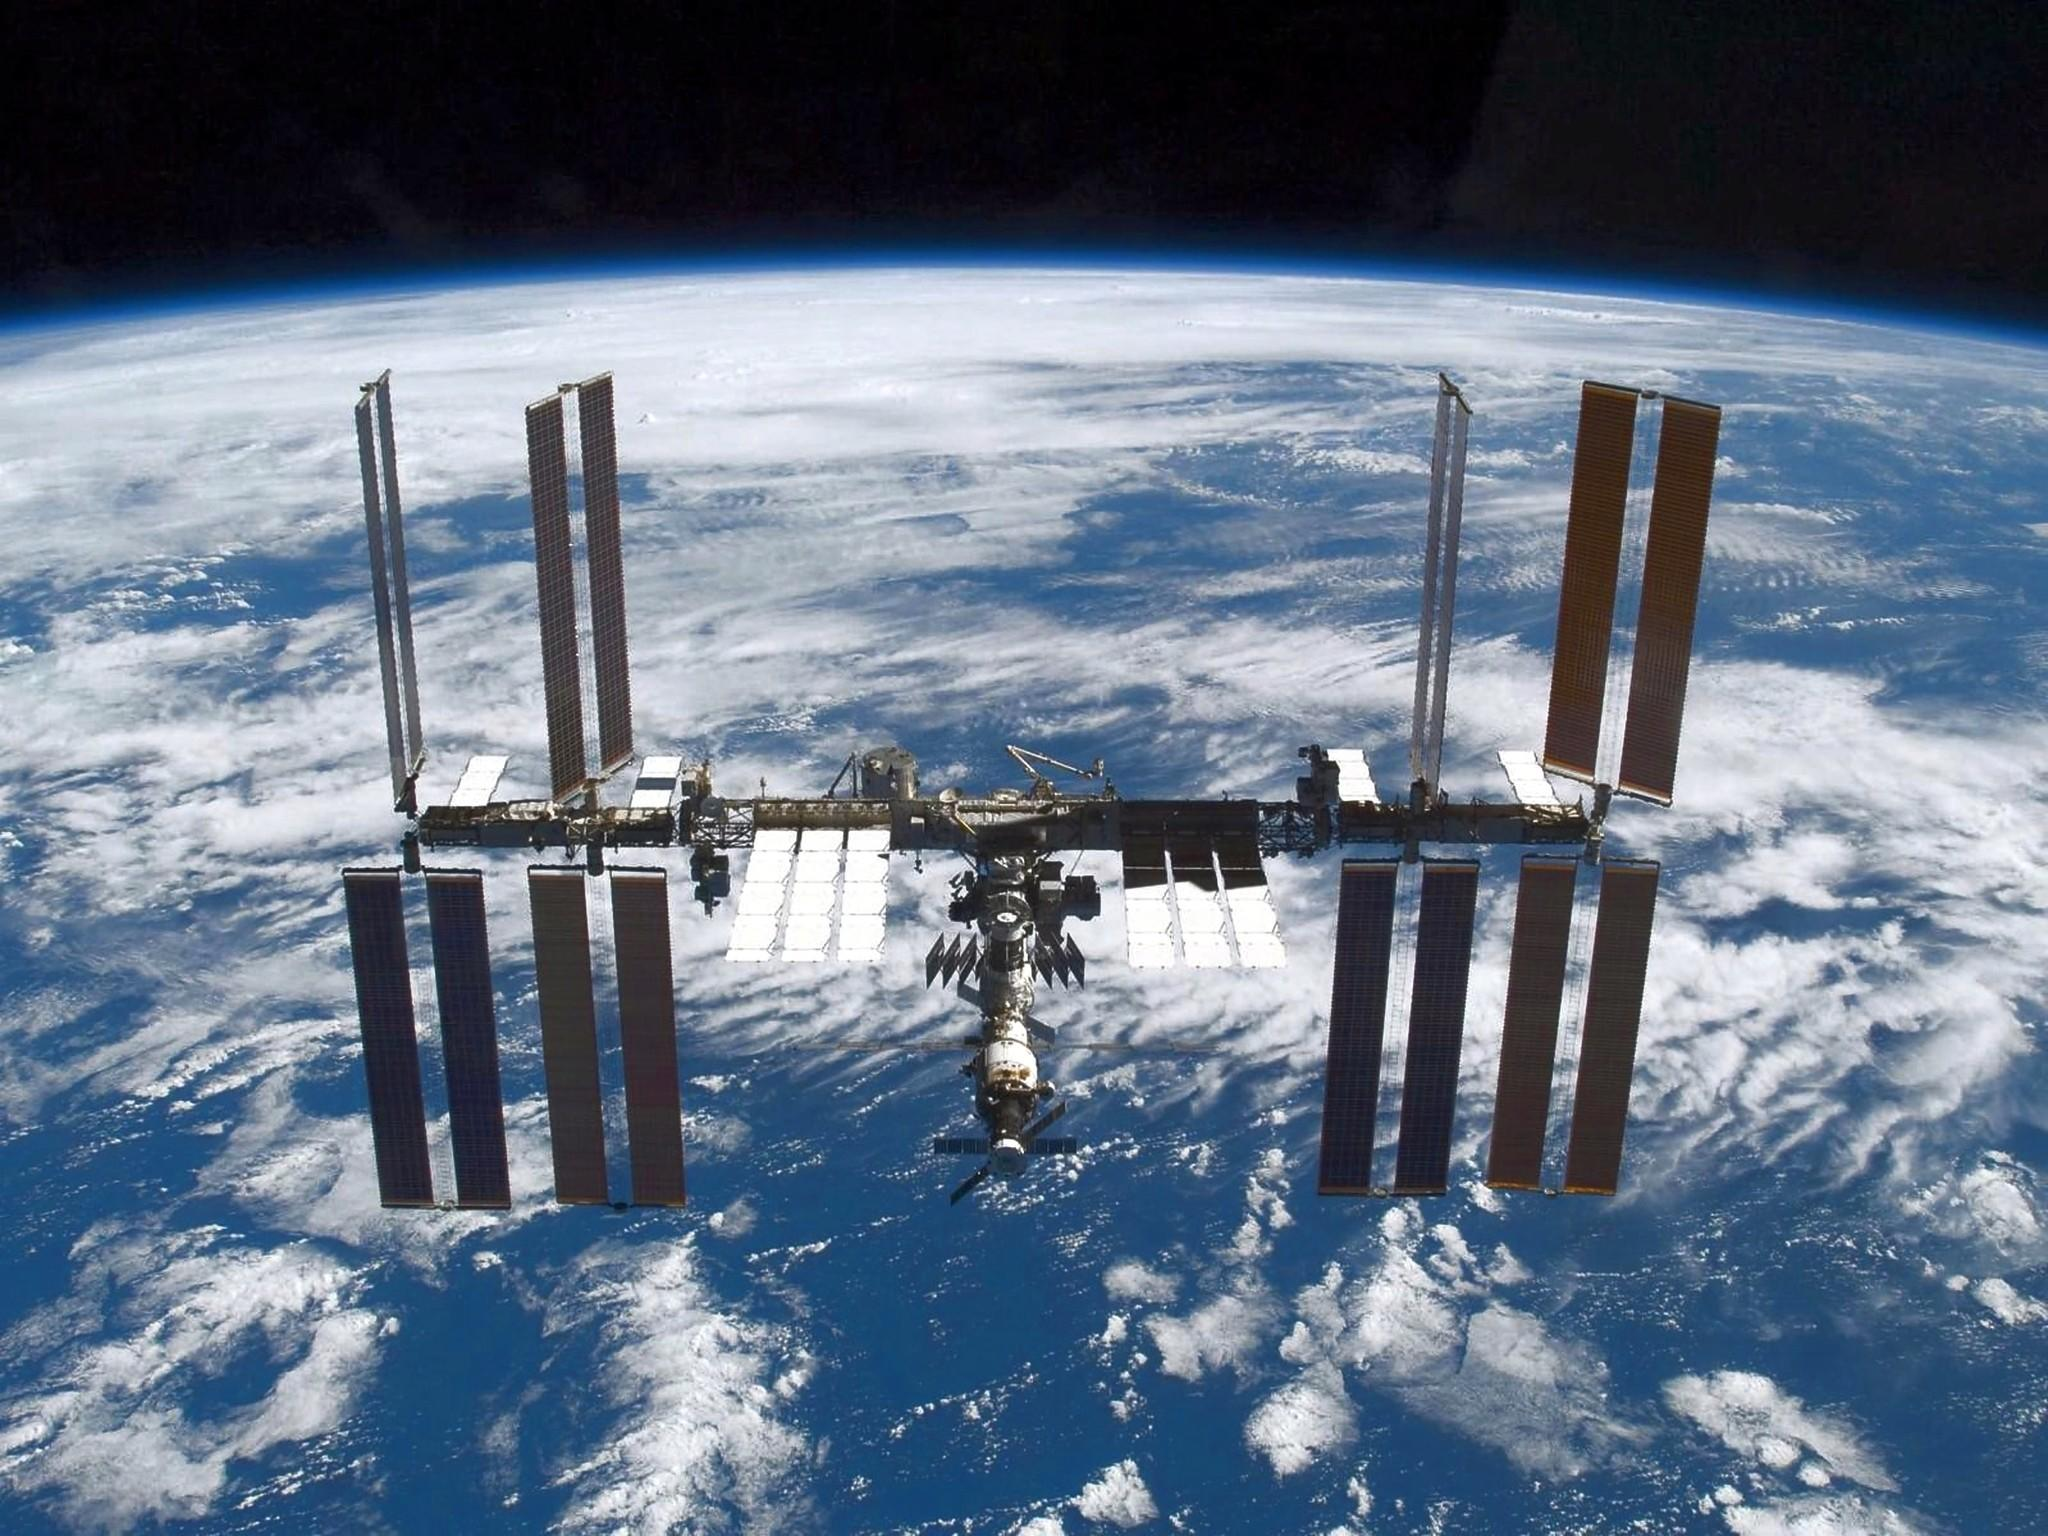 A file handout image provided by NASA and dated November 25, 2009 showing the International Space Station photographed soon after the space shuttle Atlantis and the station began their post-undocking separation.